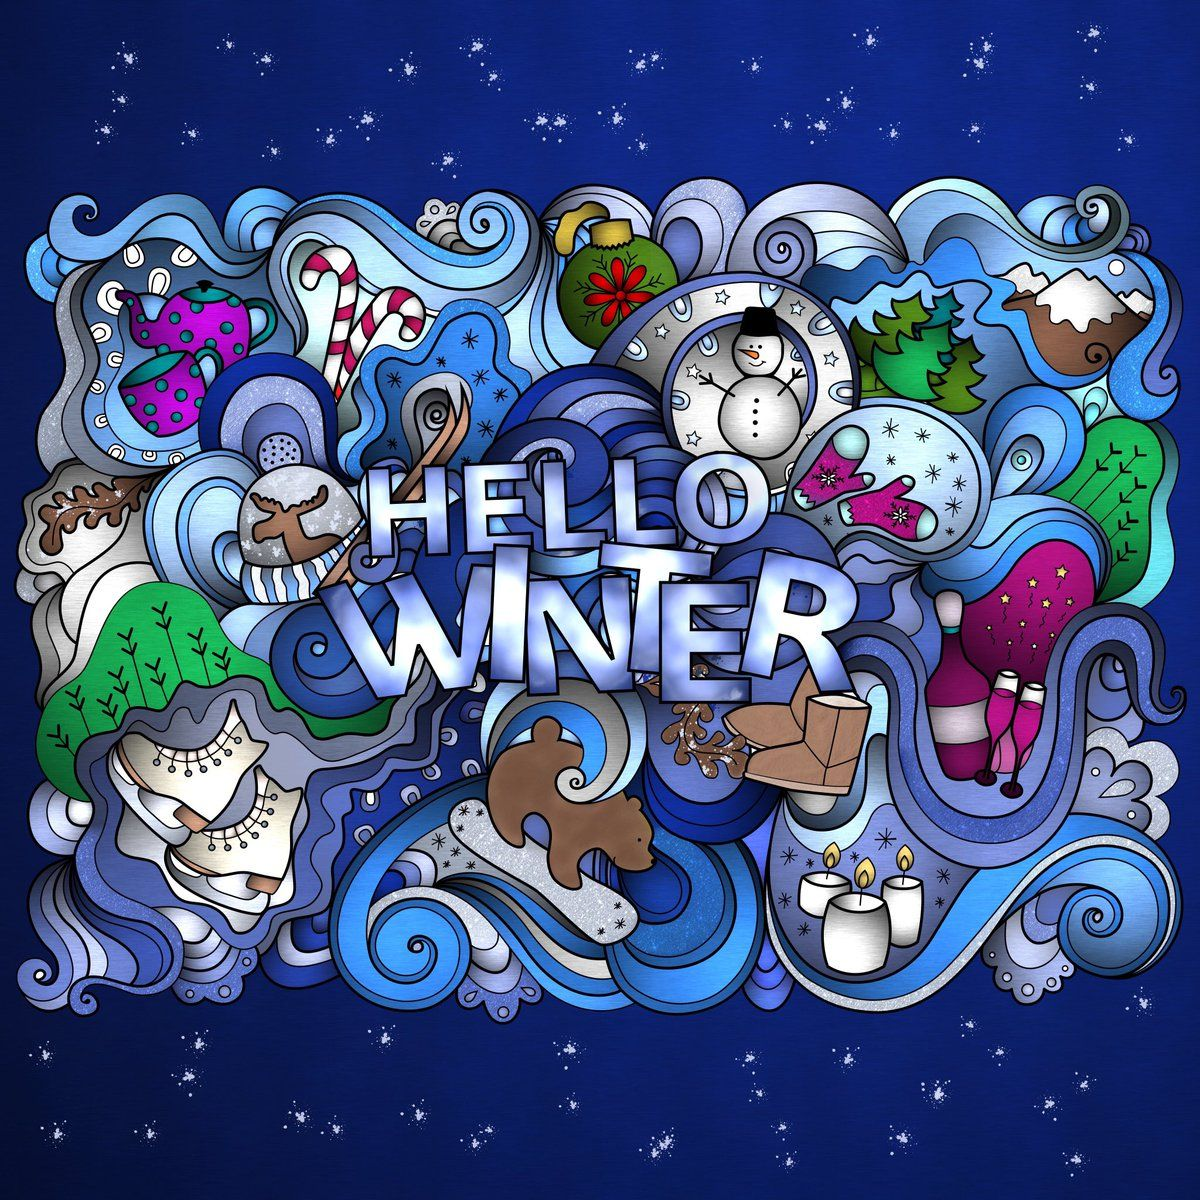 Whats Your Favorite Thing About Winter Were Loving The Use Of